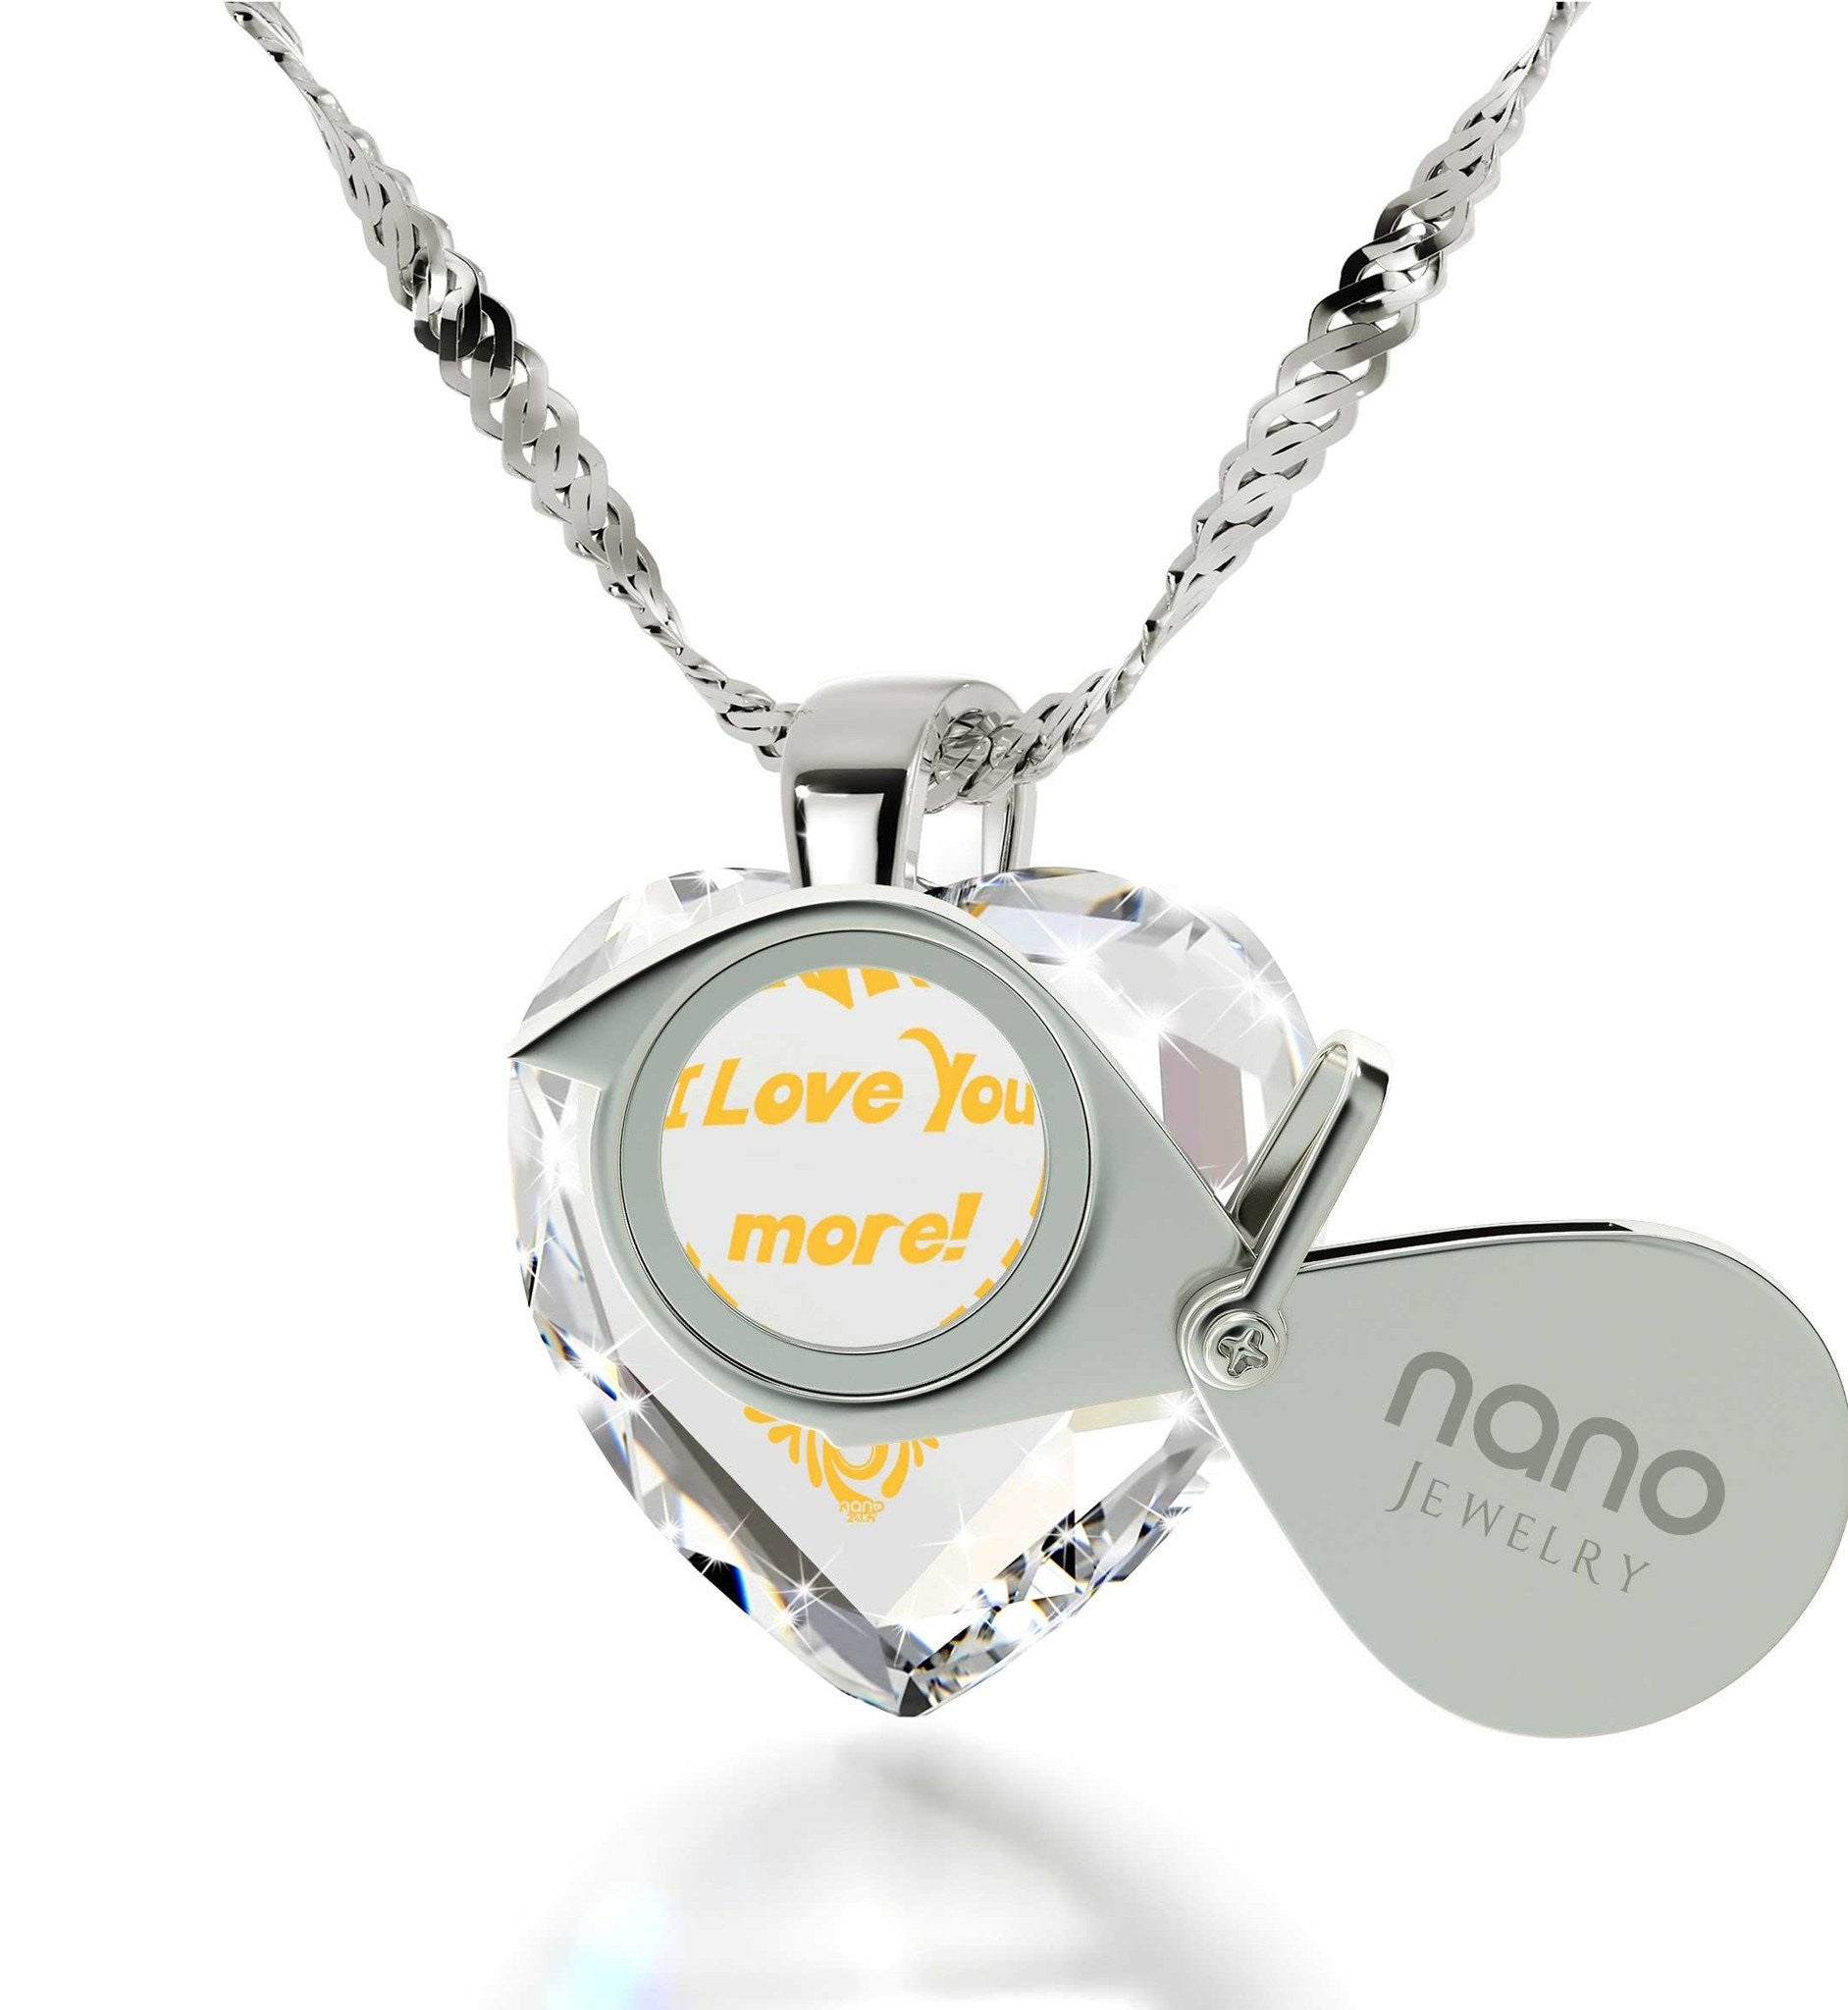 """Good Christmas Presents for Girlfriend, 24k Engraved Sterling Silver Necklace, Valentines Day Ideas for Her, Nano Jewelry"""